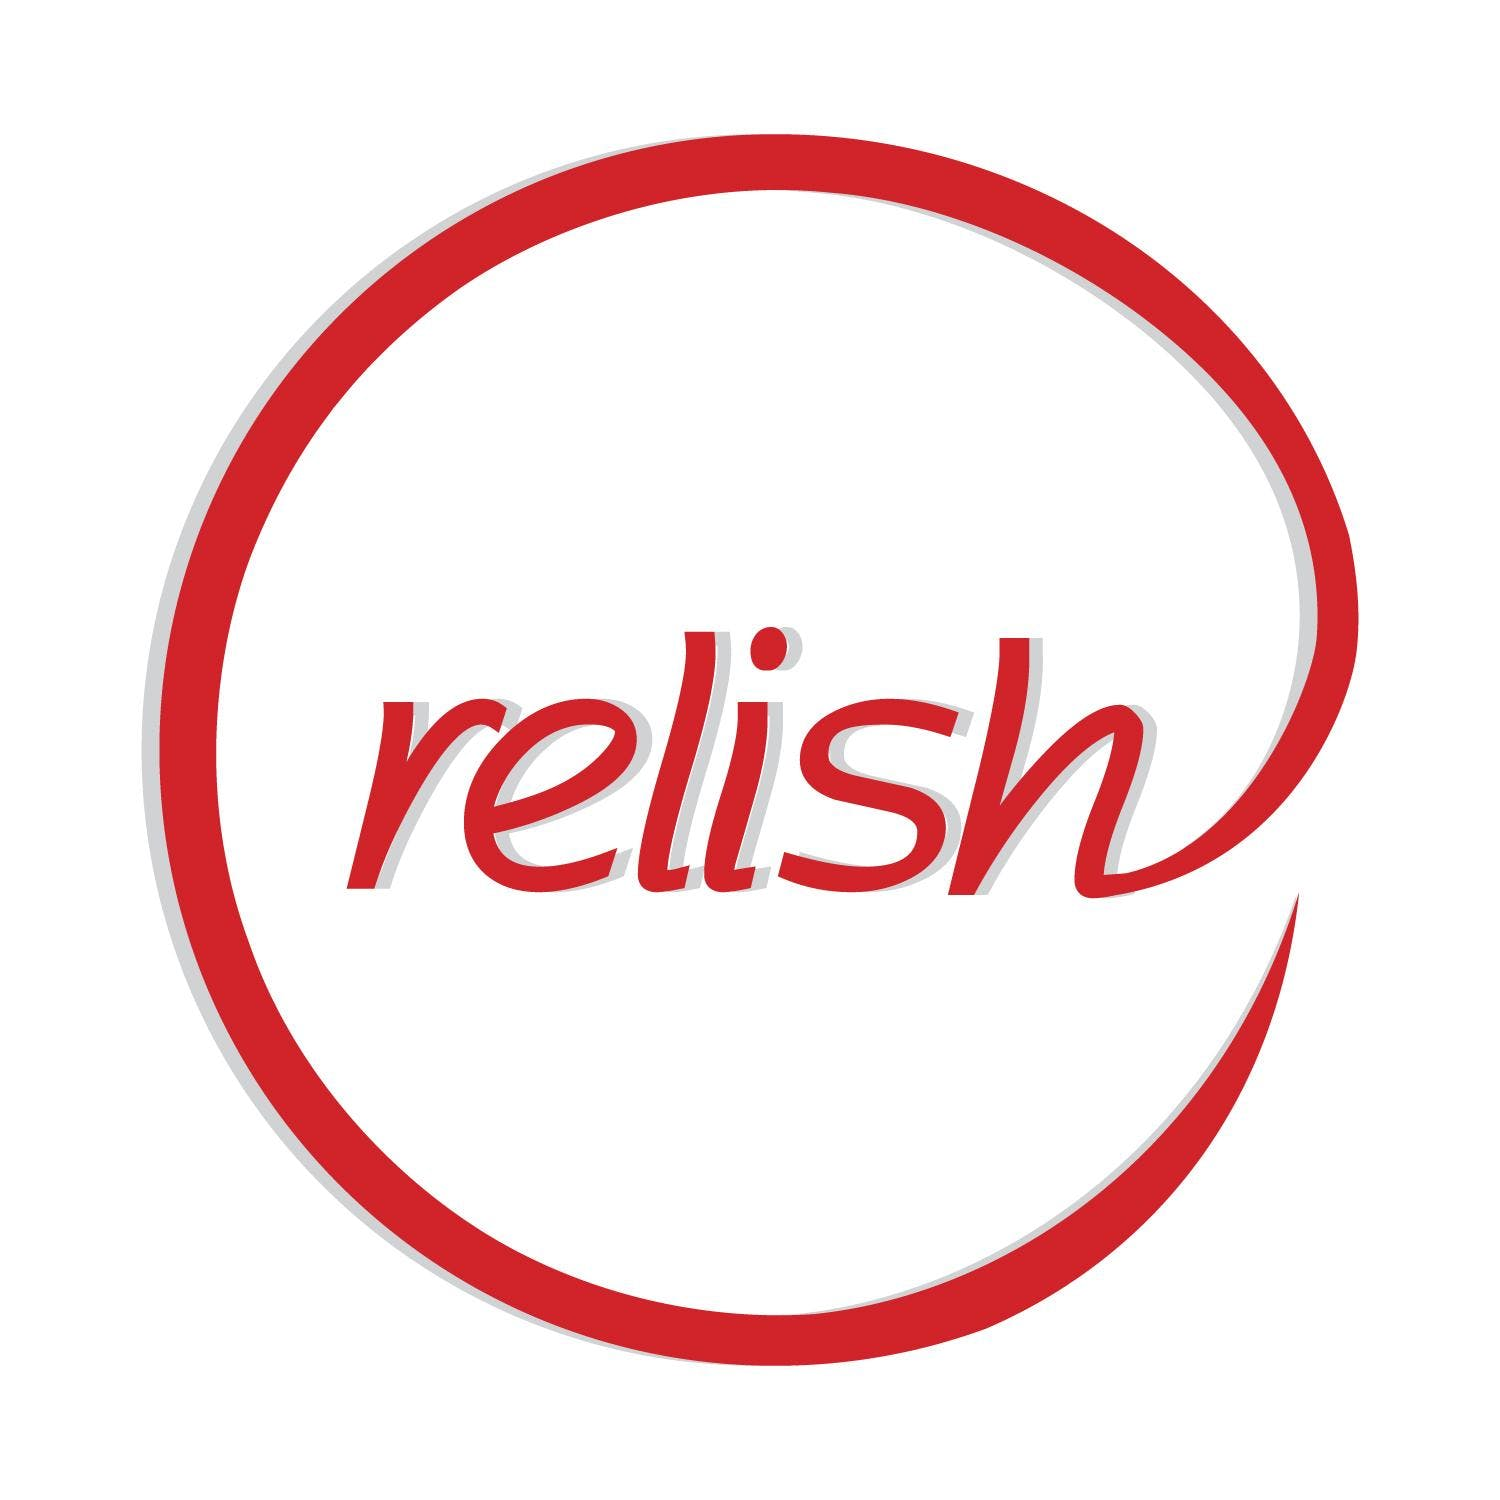 Oct 2018. Saturday Night Speed Dating Event In Houston | Relish Speed Dating Houston Event Night at Rosemont on Oct 20th, 7:00pm.